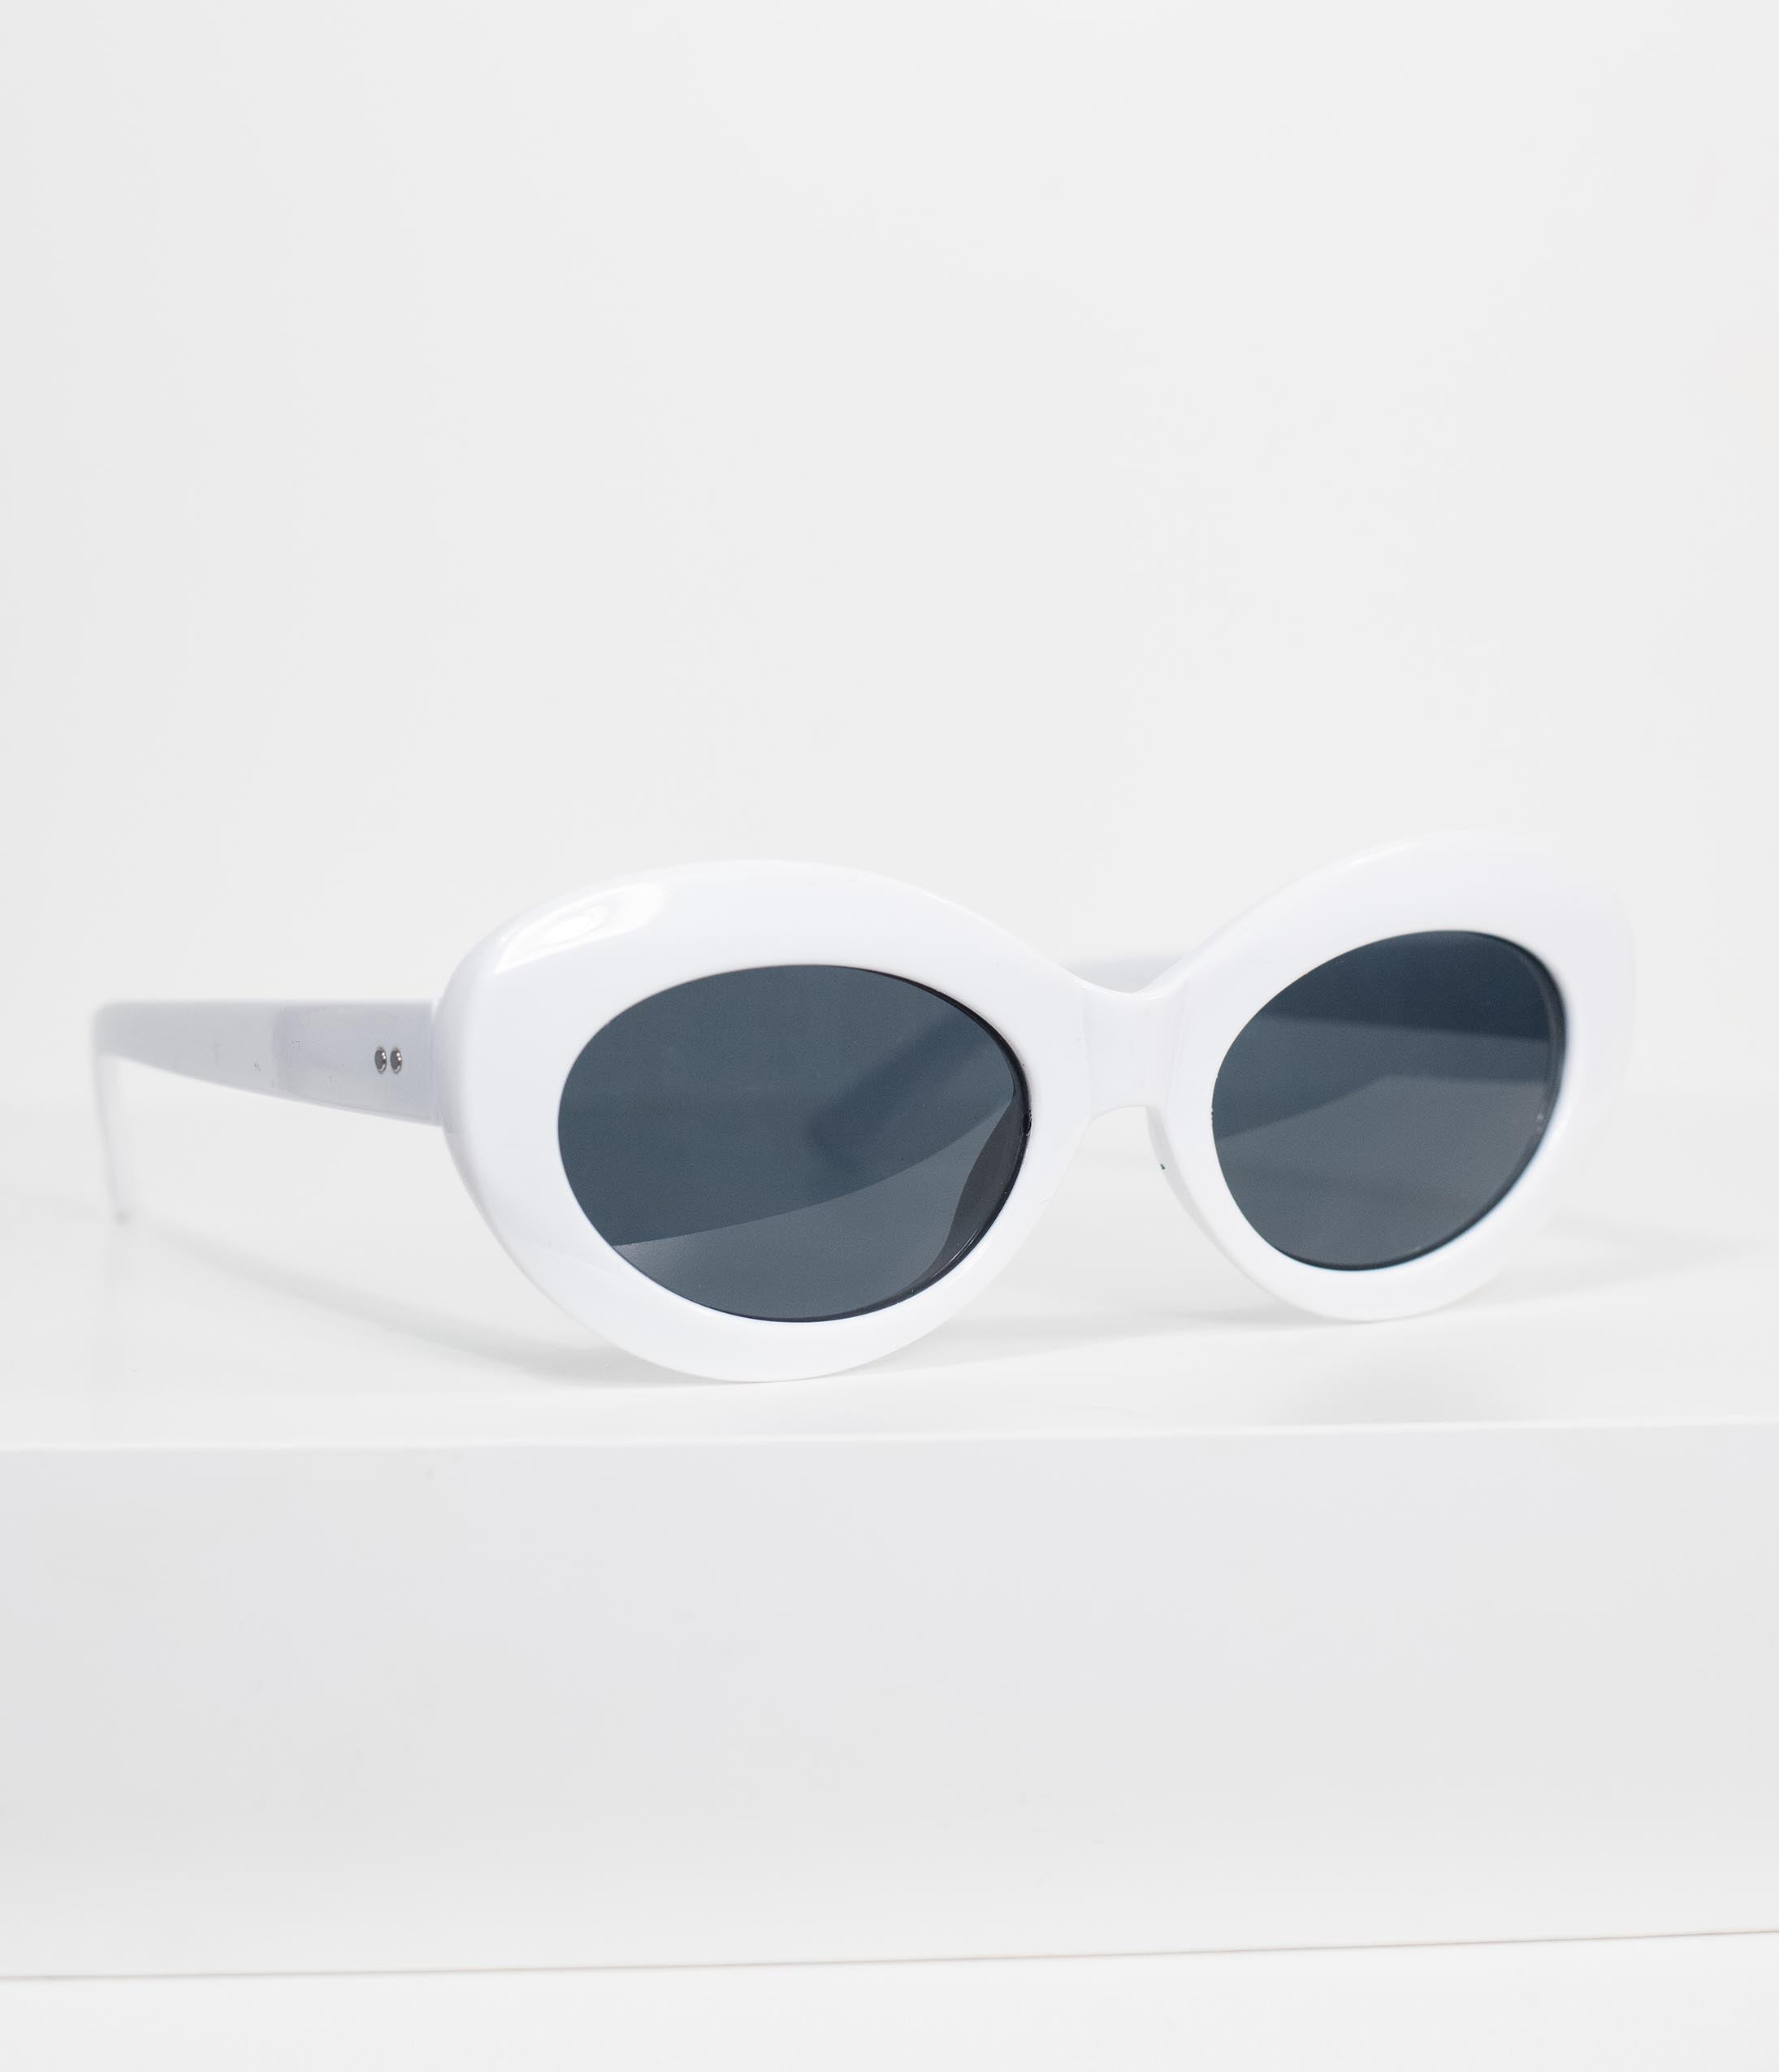 1960s Sunglasses | 70s Sunglasses, 70s Glasses Retro Style White Lava Rounded Cateye Sunglasses $22.00 AT vintagedancer.com